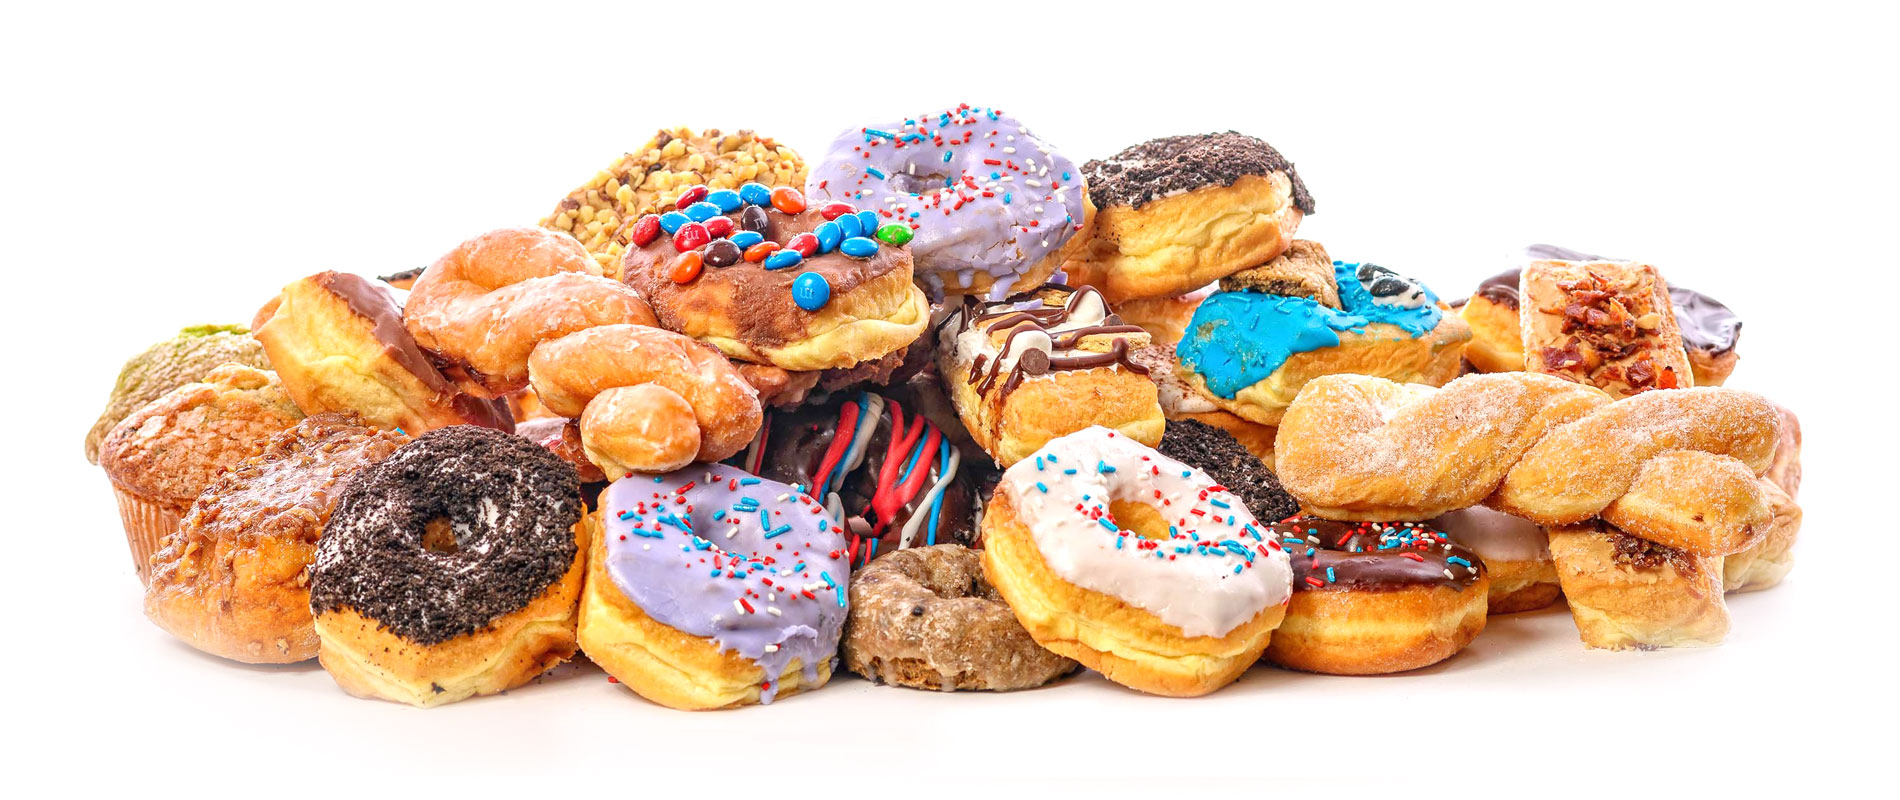 sandys-donuts-selections